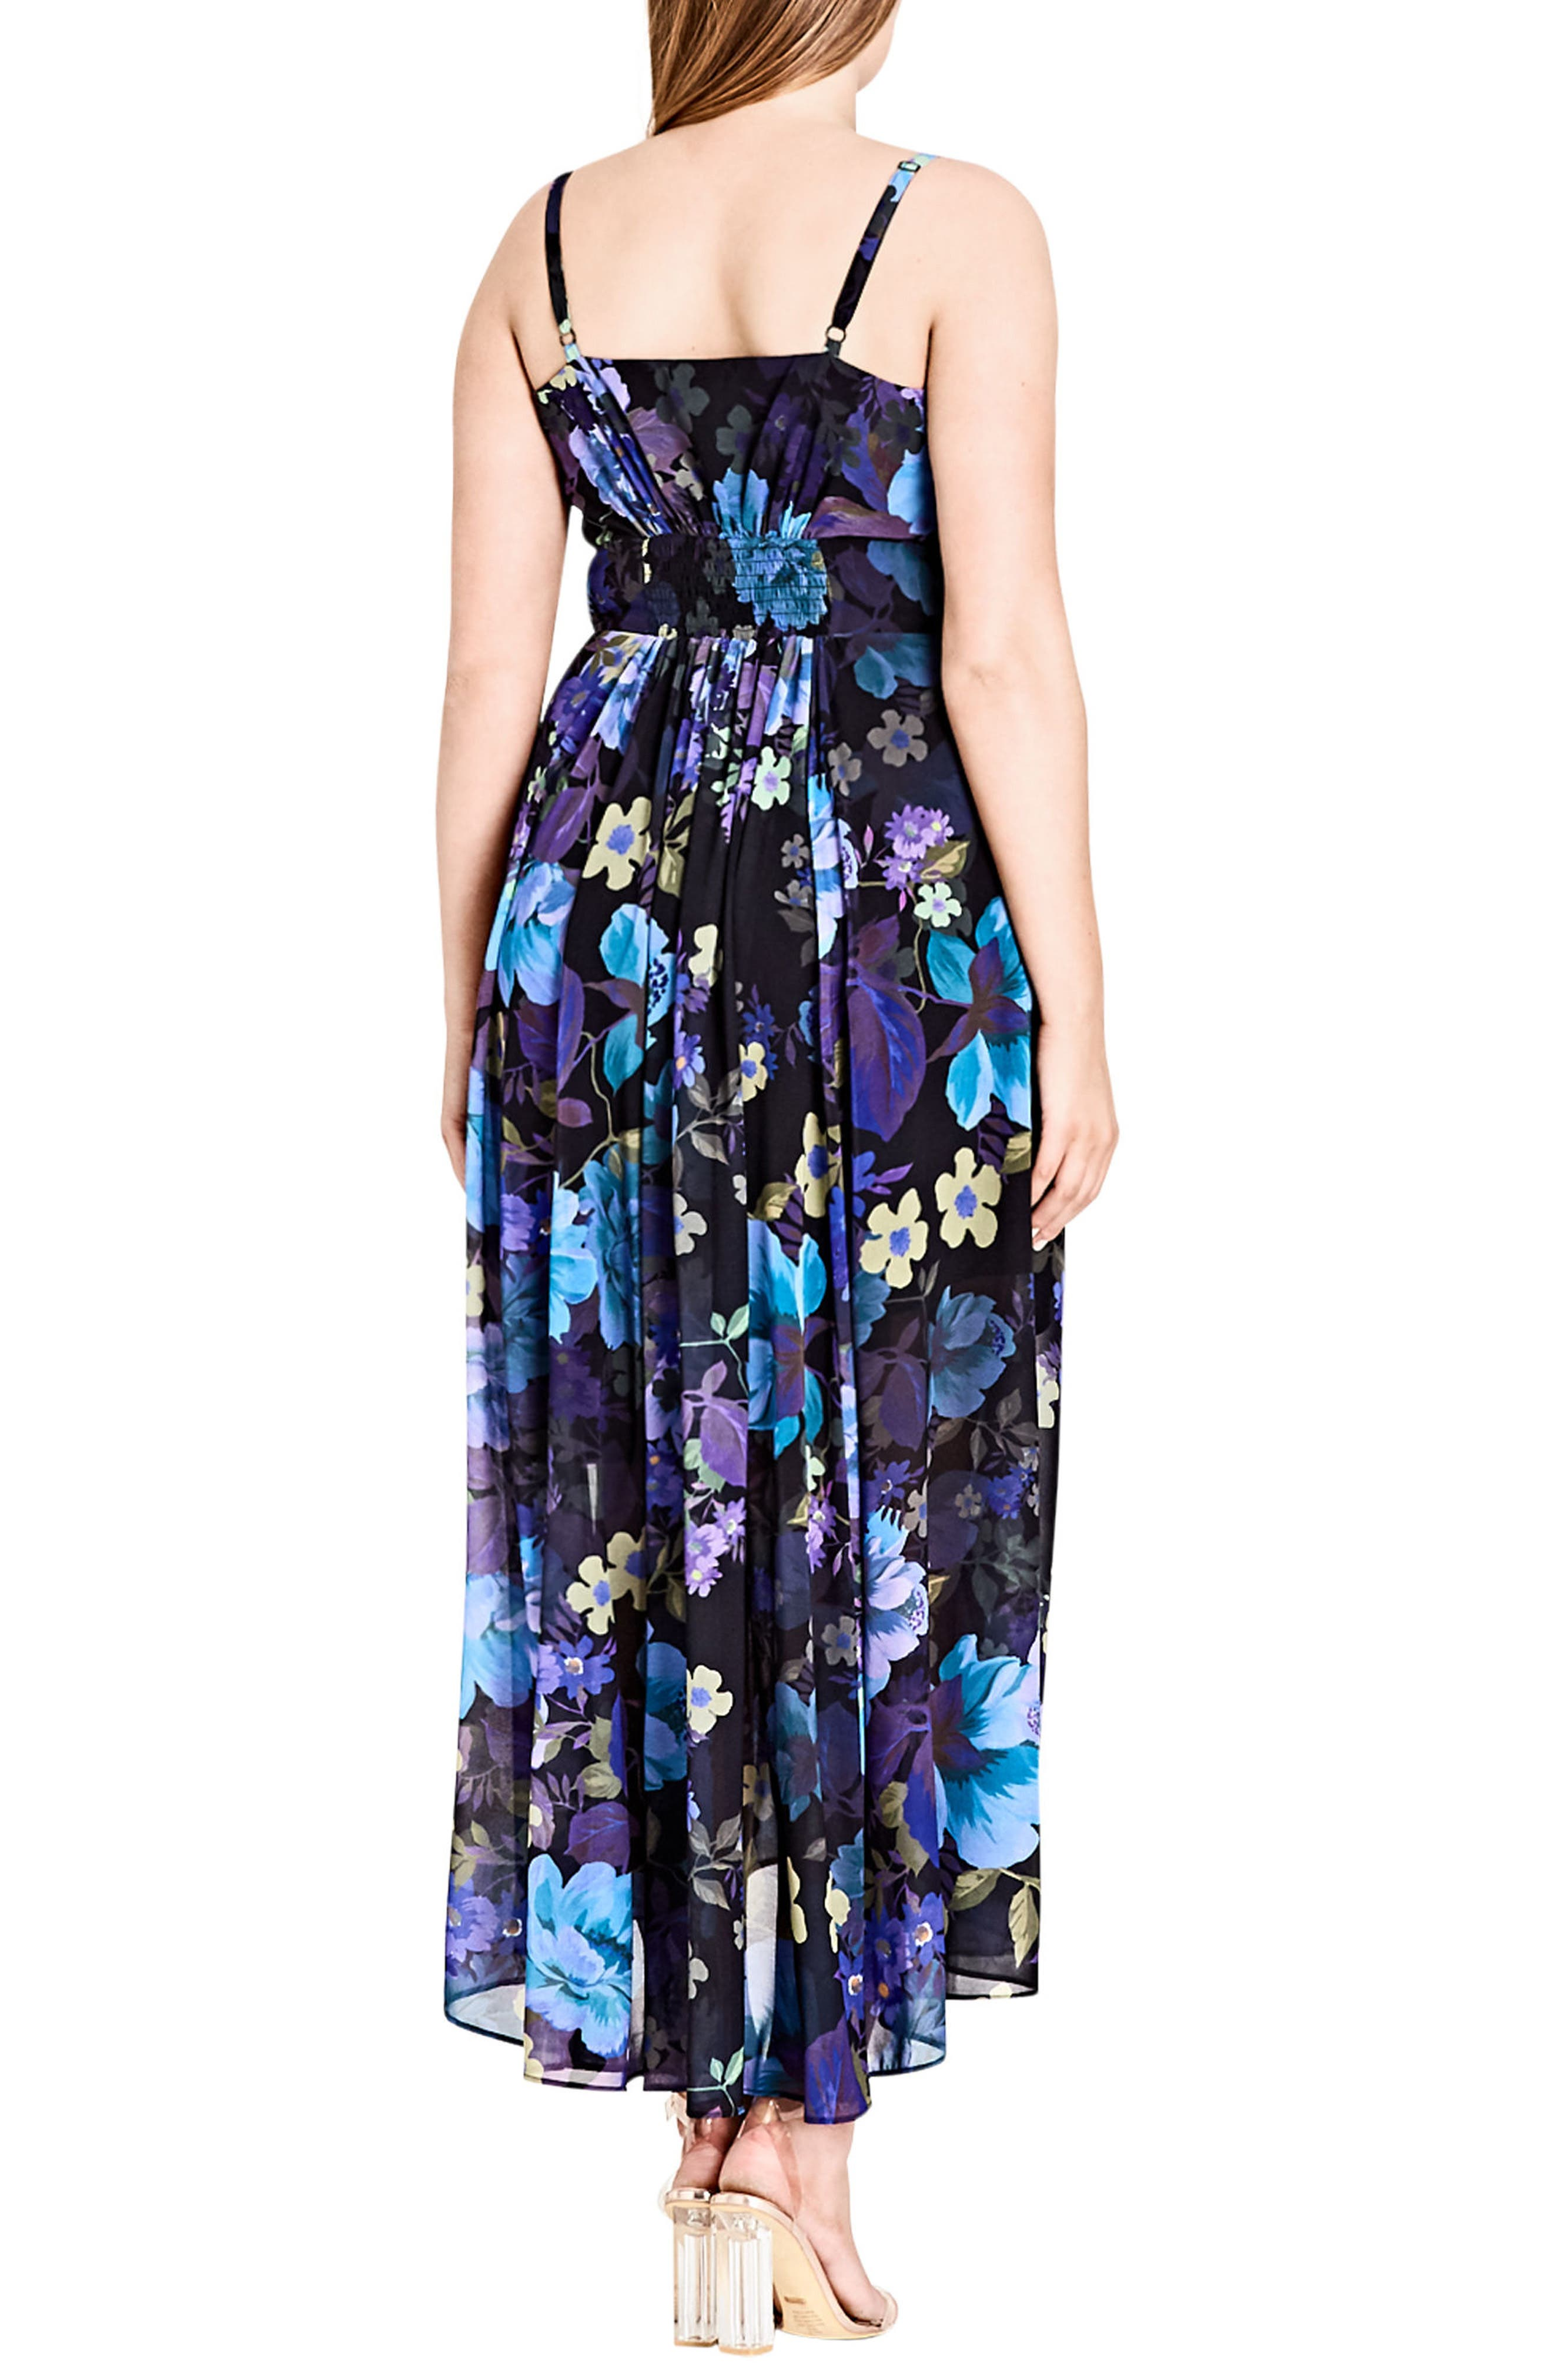 Chic City Falling Floral Maxi Dress,                             Alternate thumbnail 2, color,                             415